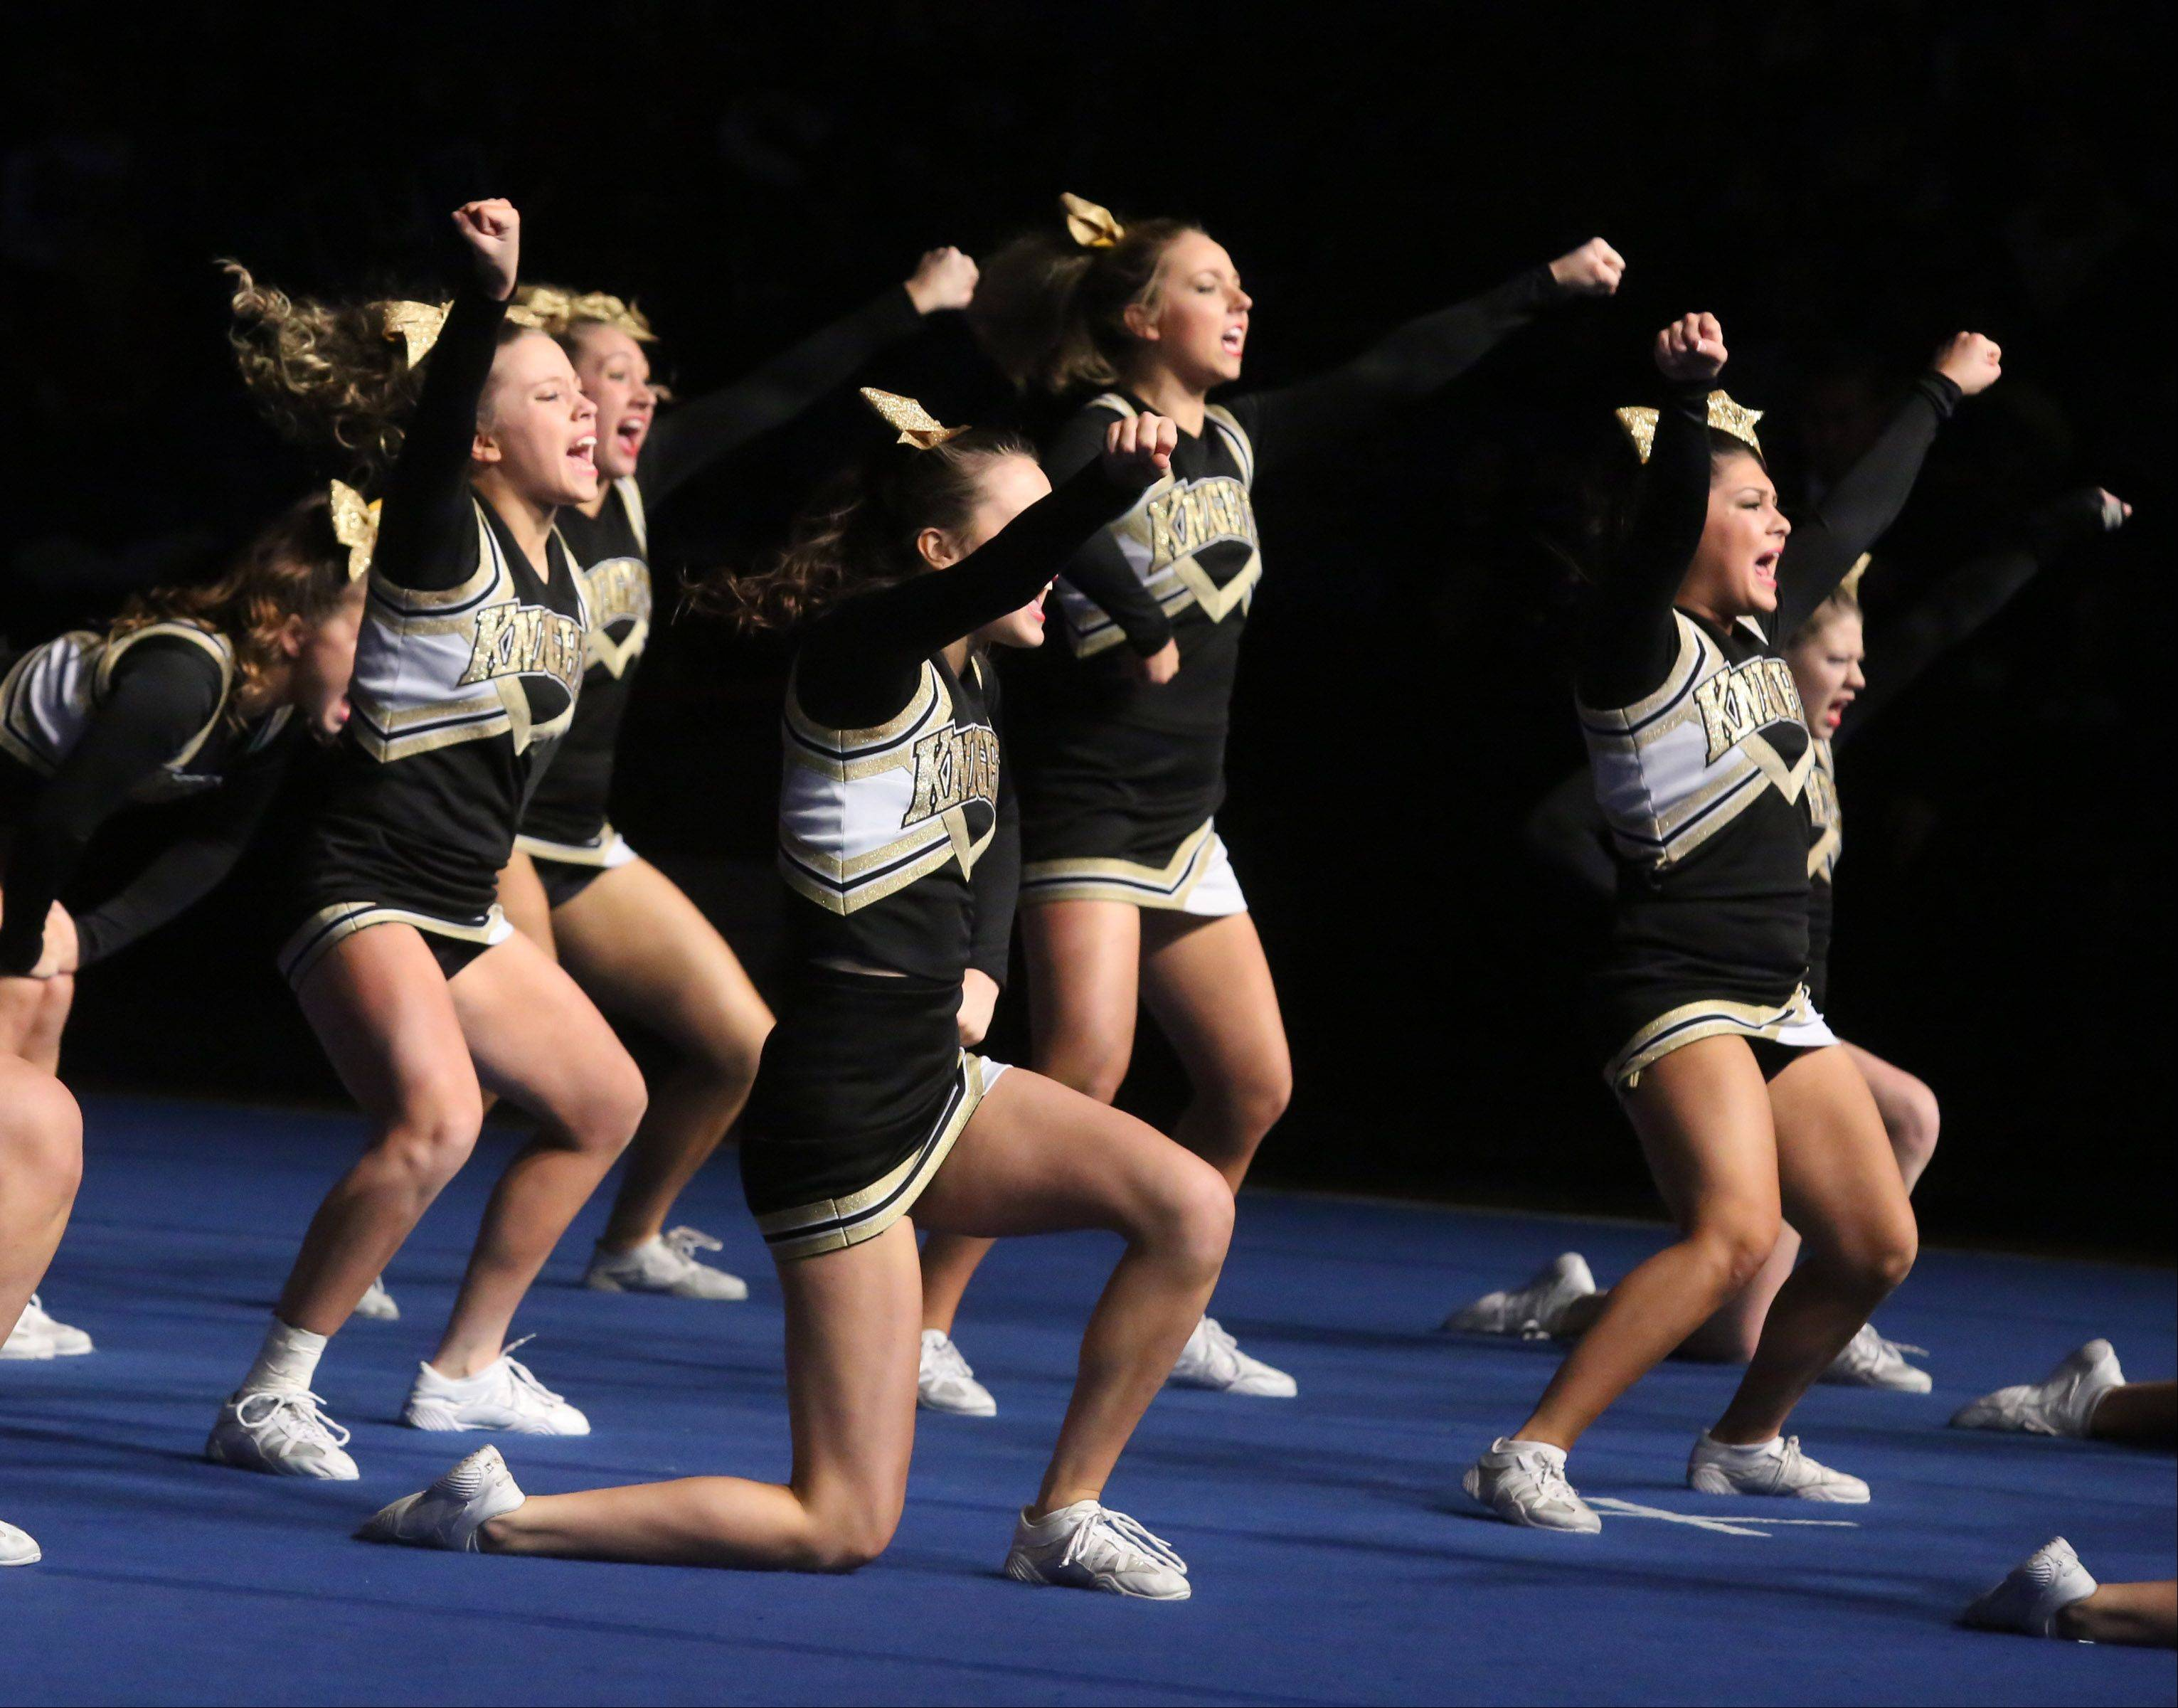 Images: Competitive Cheerleading prelims, Northwest and Lake County